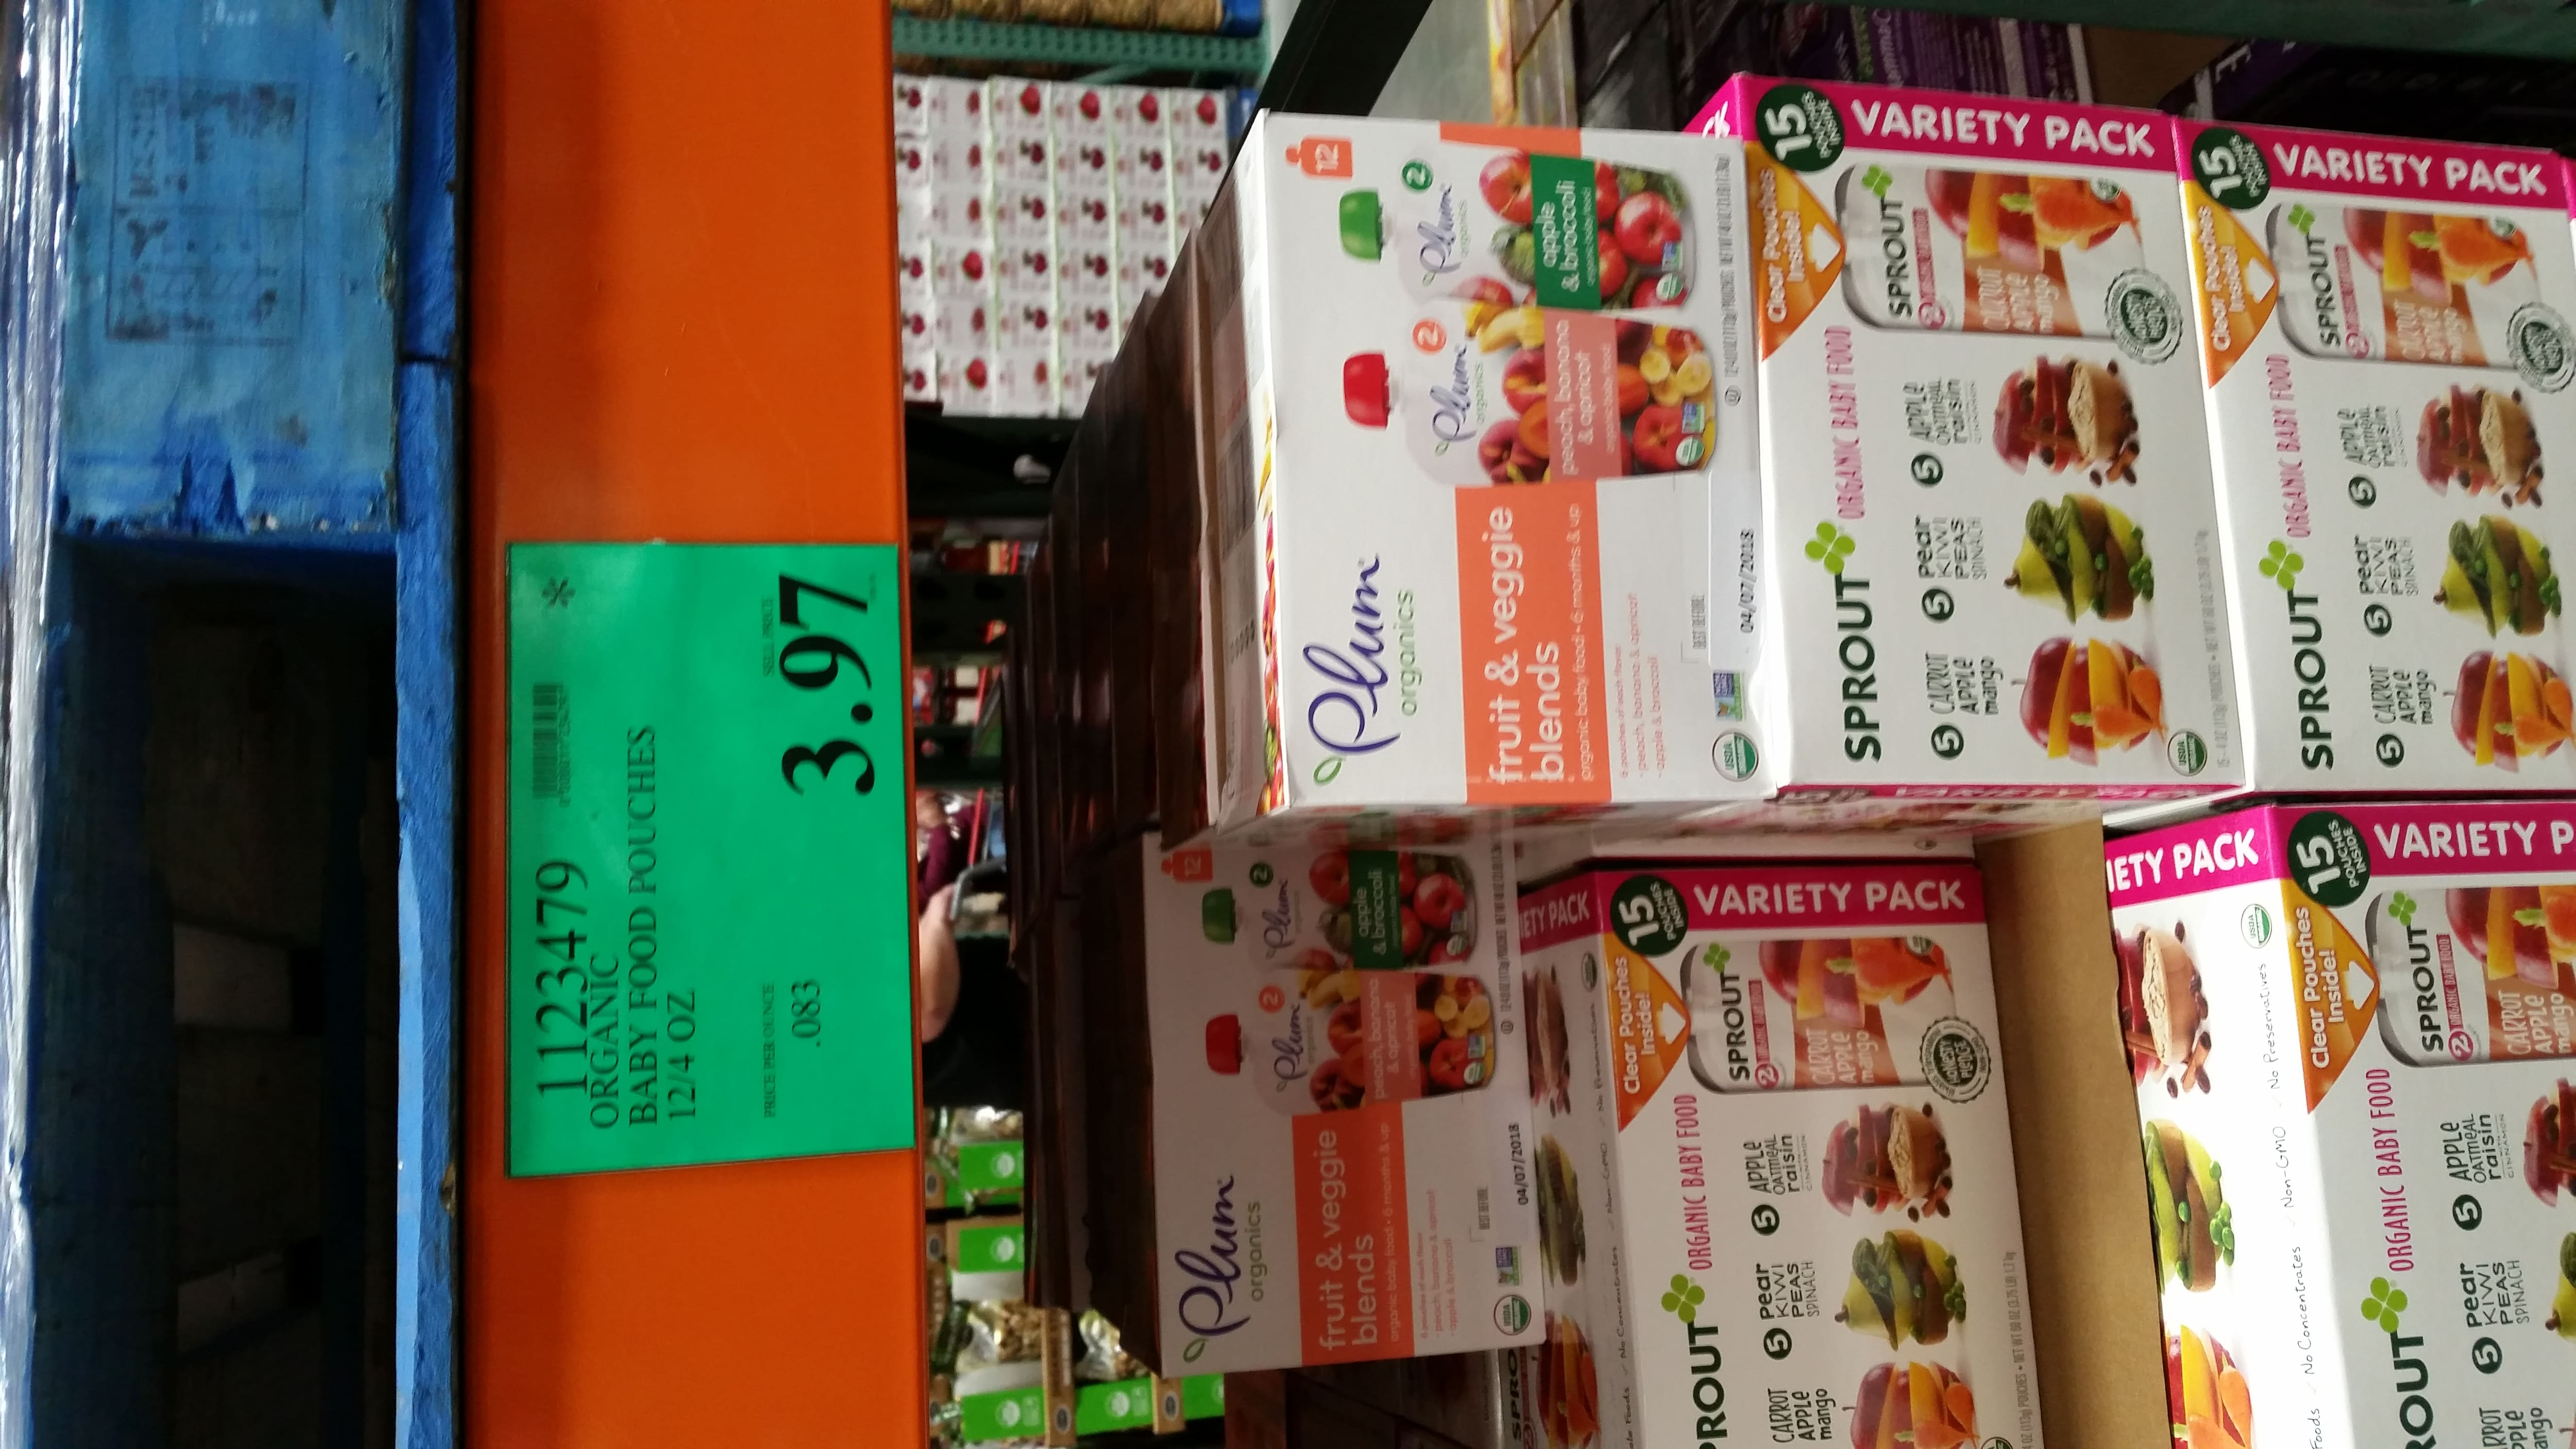 Plum Organics Pouches Fruit and Veggie Blends 12 pack $3.97 Costco YMMV